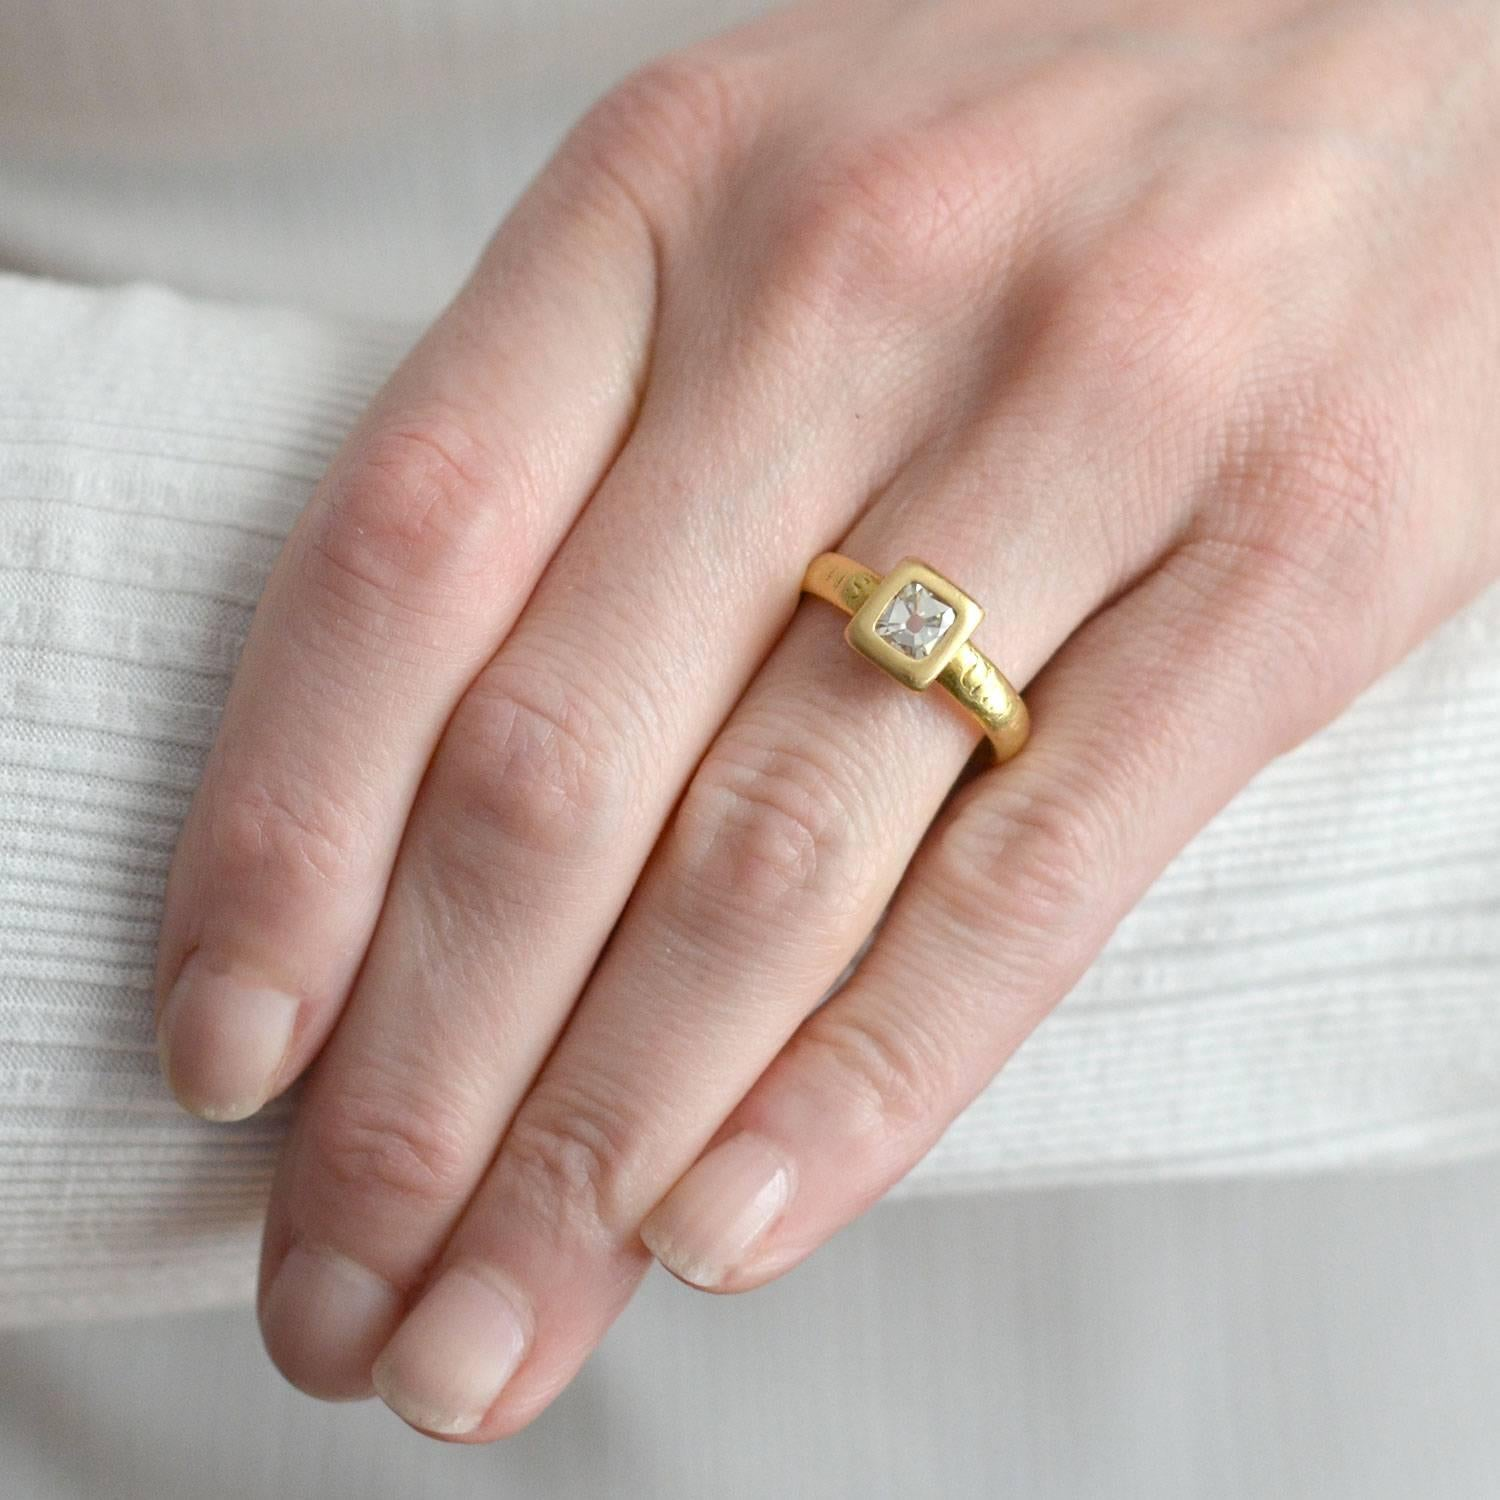 Georgian Table Cut Diamond Inscribed Gold Ring For Sale at 1stdibs